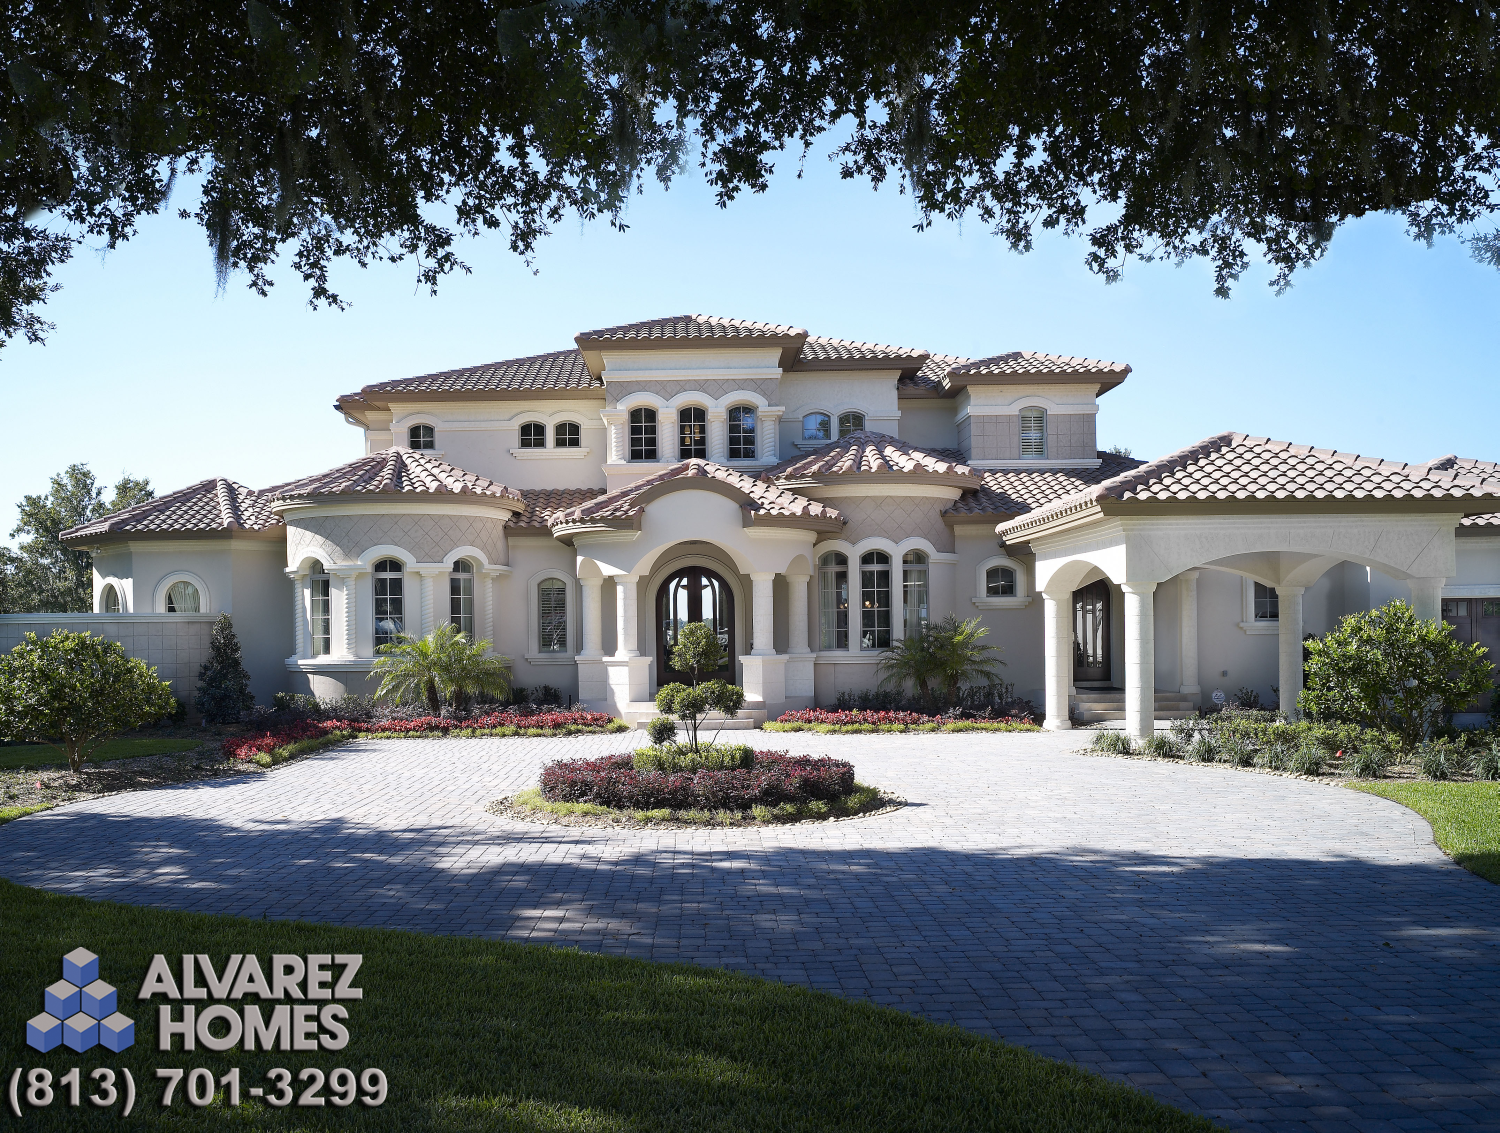 The Audrey Front Exterior By Tampa Custom Home Builder Alvarez Homes 813 701 3299 B Mediterranean Style Homes Mediterranean Homes Luxury Homes Dream Houses